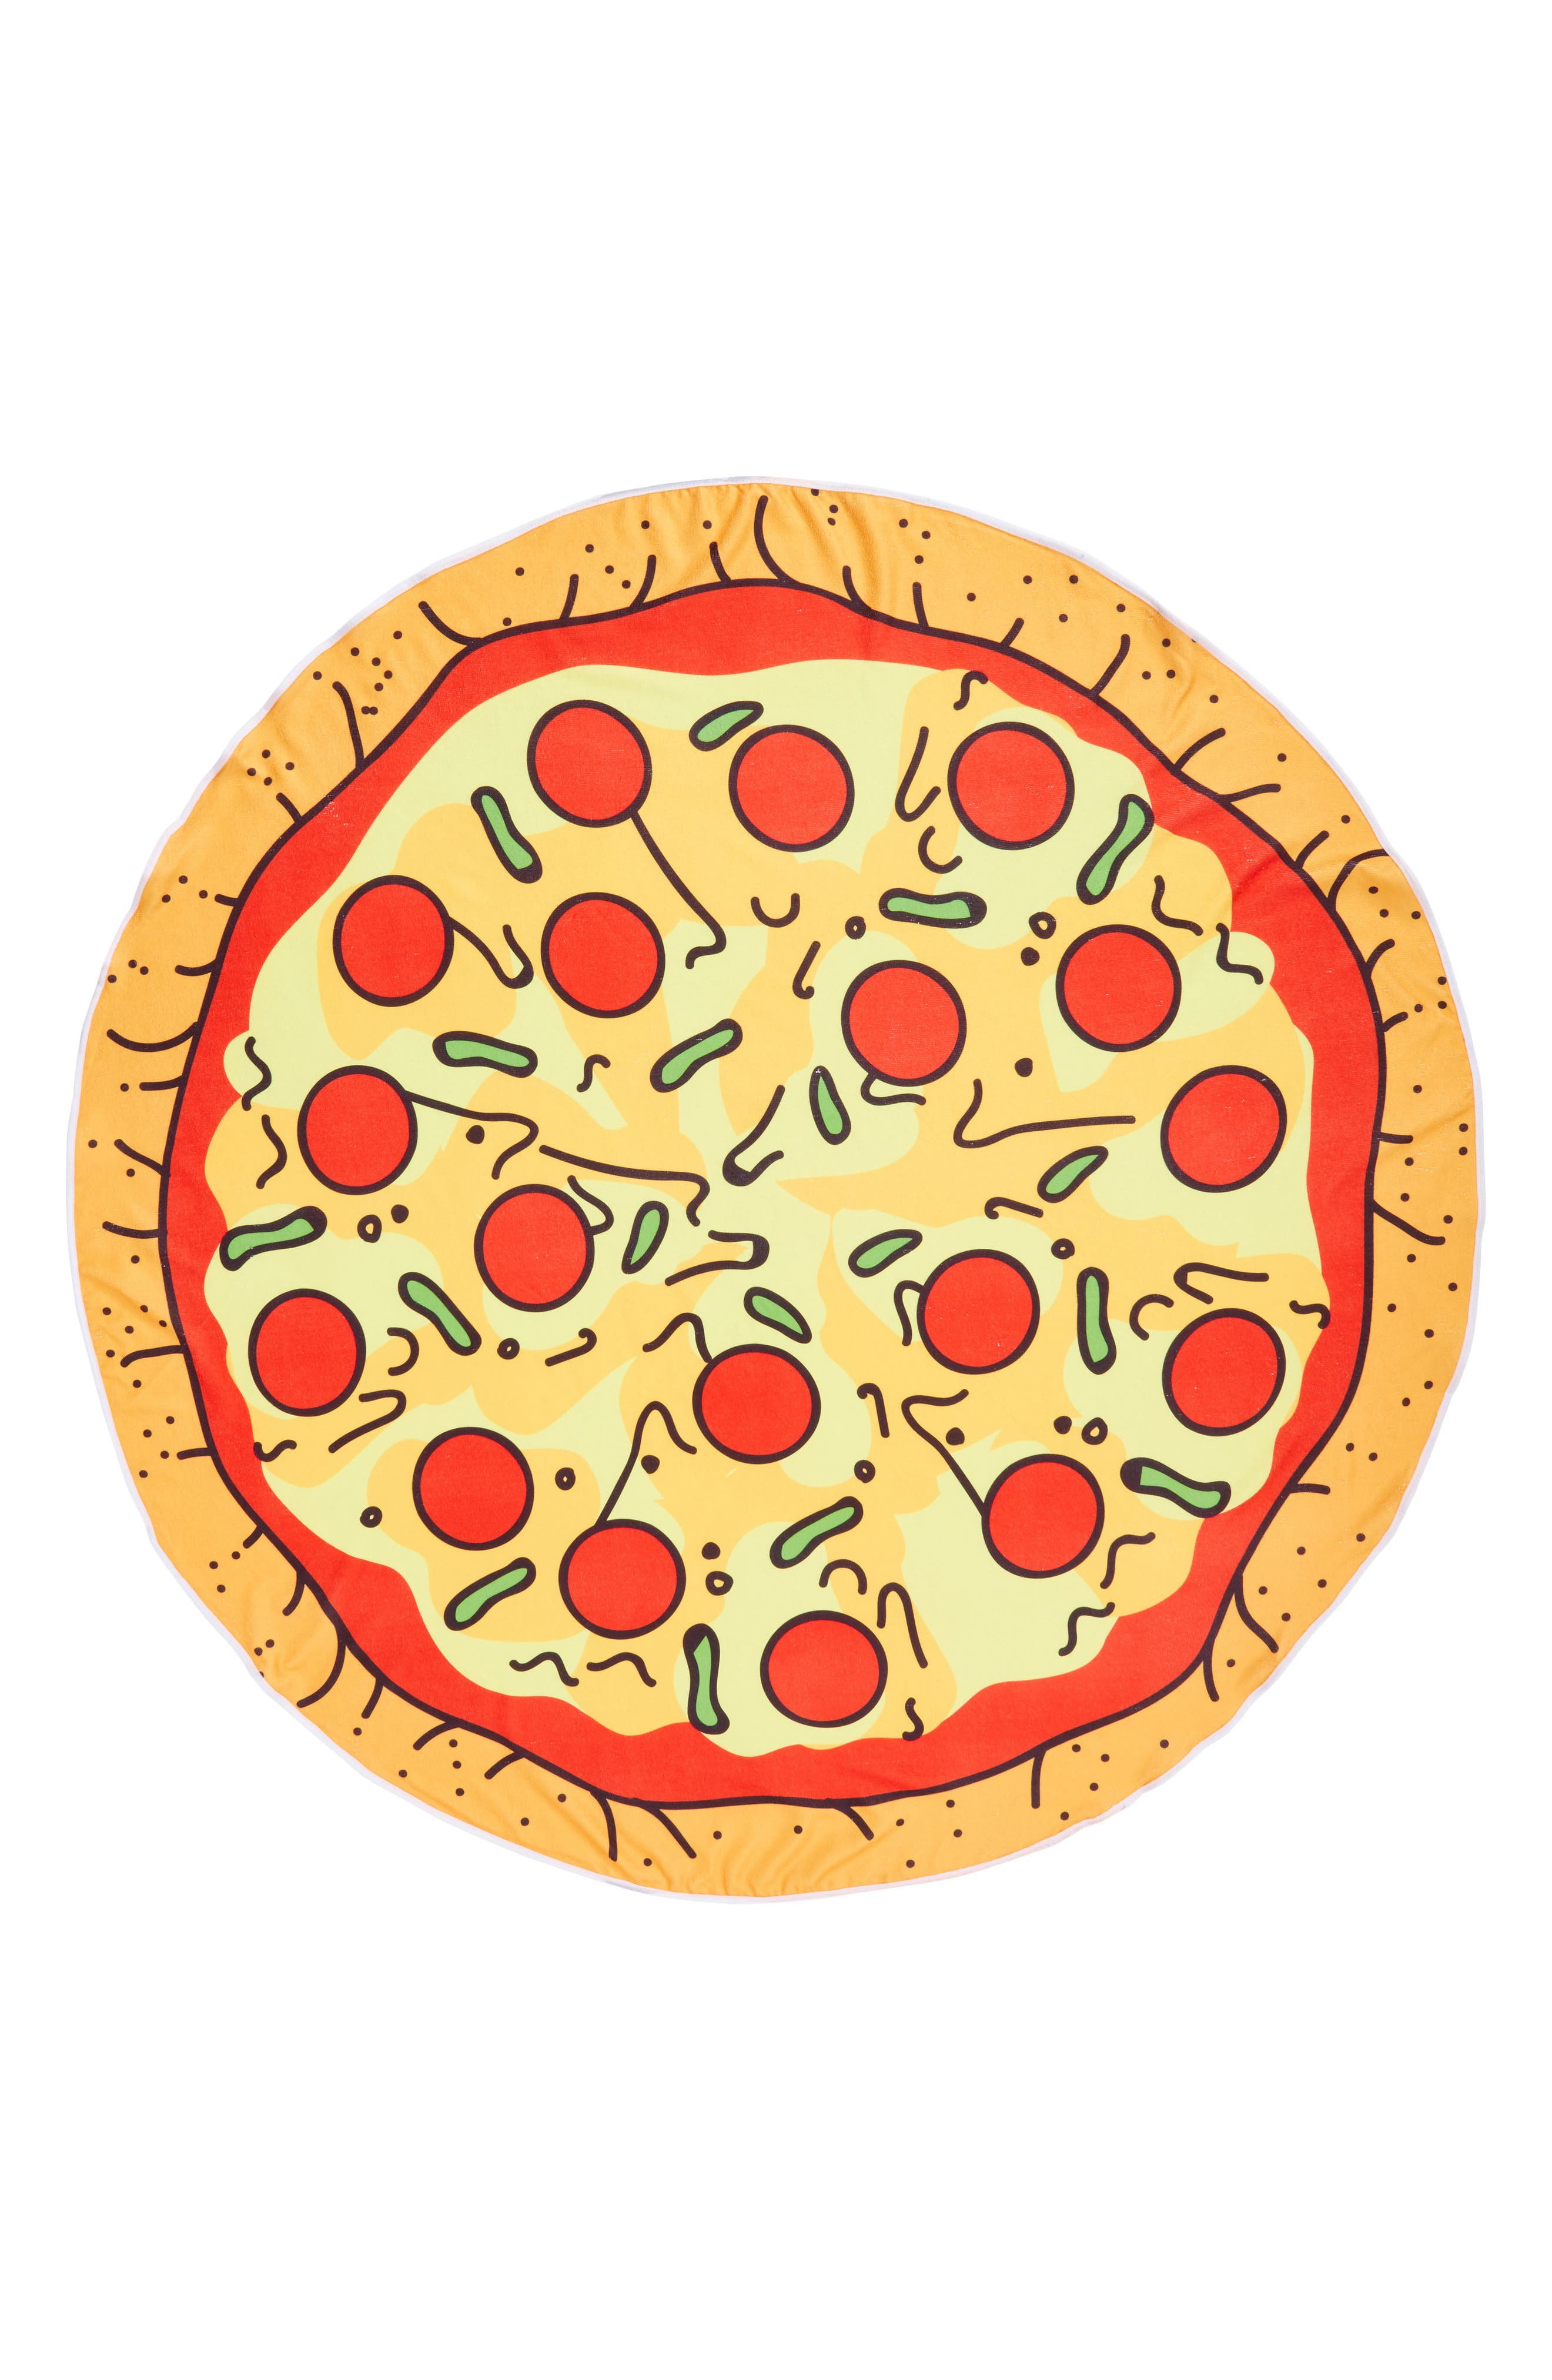 Alternate Image 1 Selected - Capelli New York Cheesy Pizza Round Towel